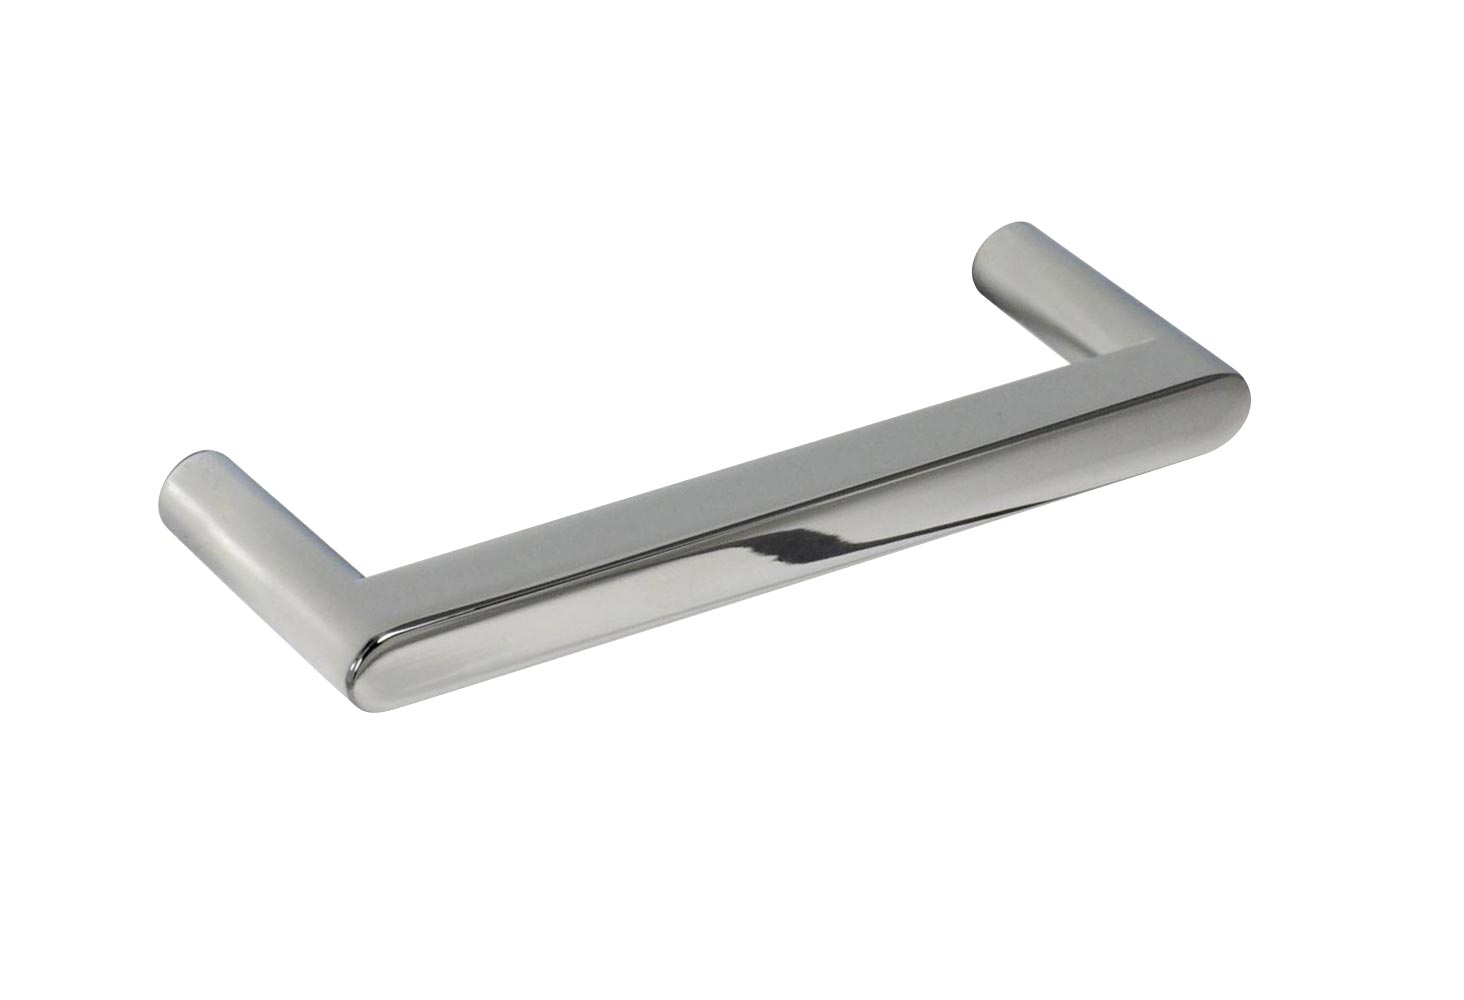 #5800 CKP Brand Quantum Collection 3-3/4 in. (96mm) Drawer Pull, Polished Chrome